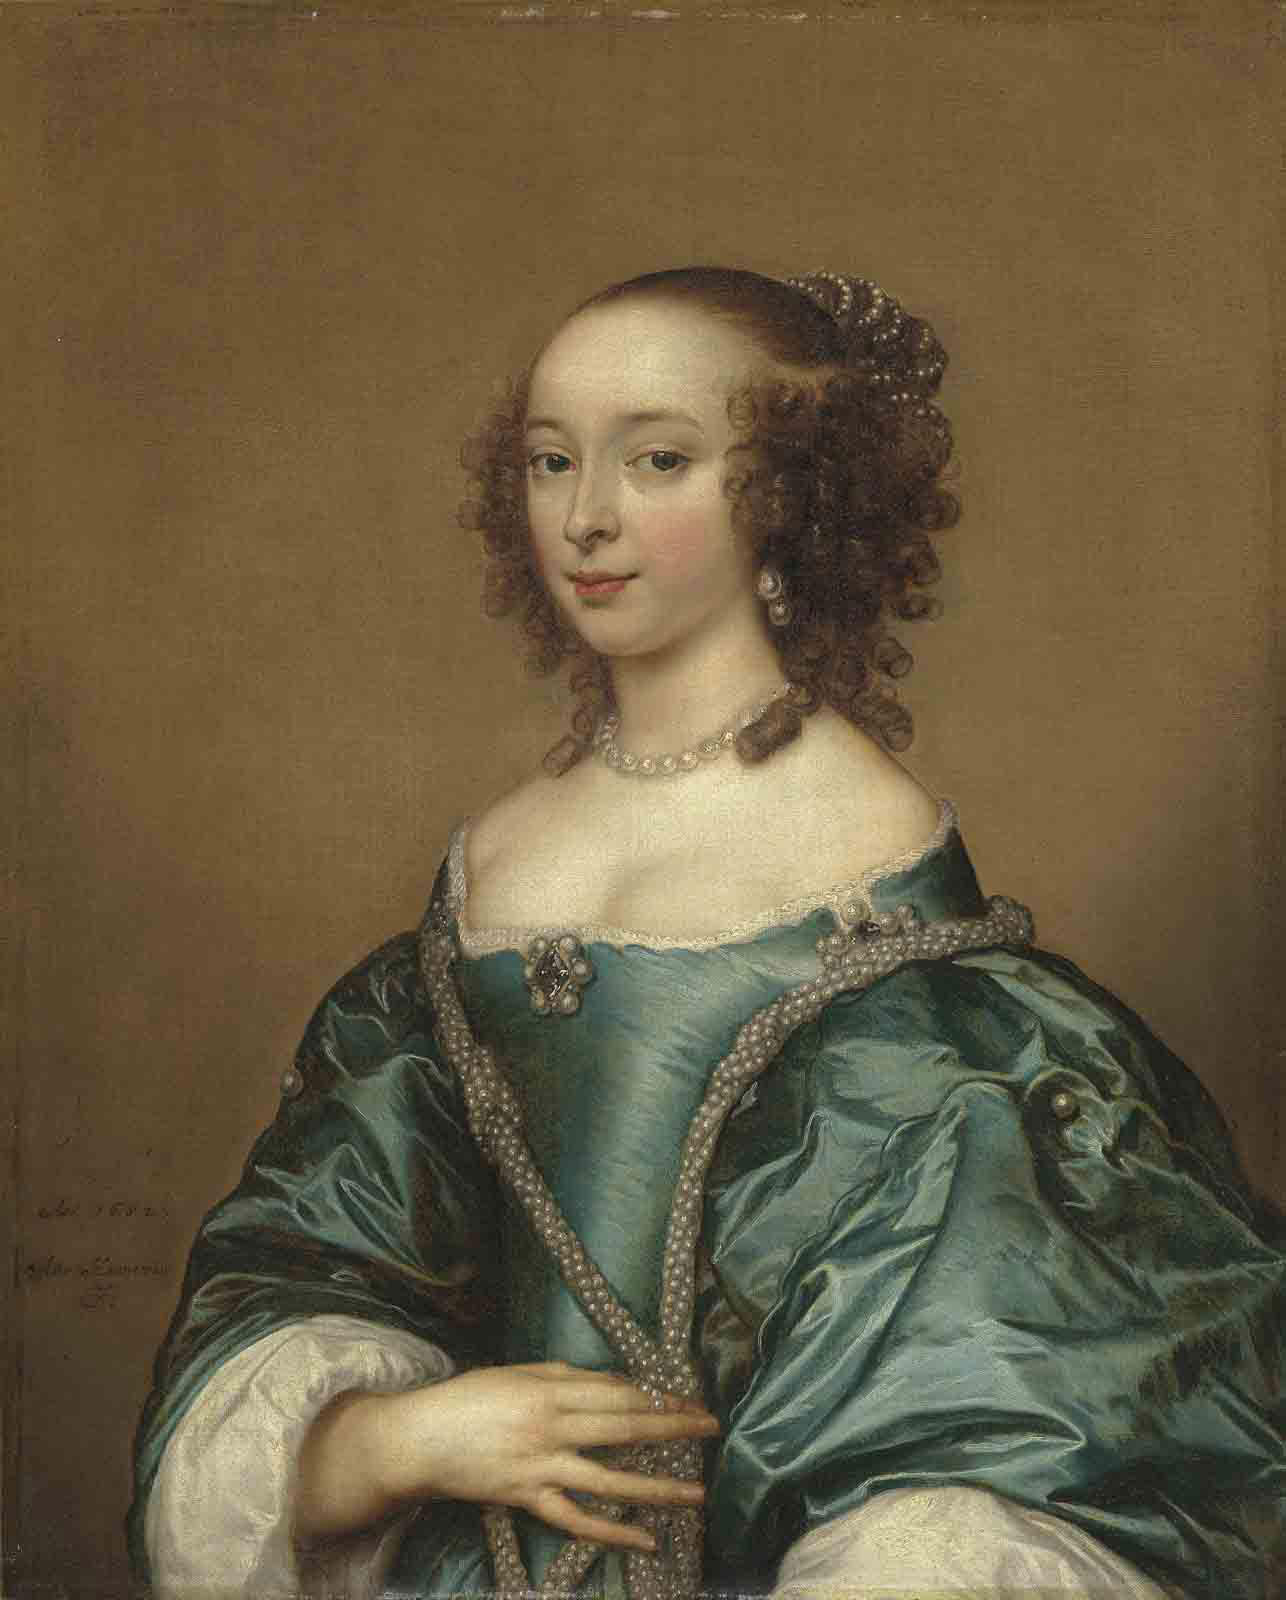 Portrait of a lady, half-length, in a blue dress with pearls